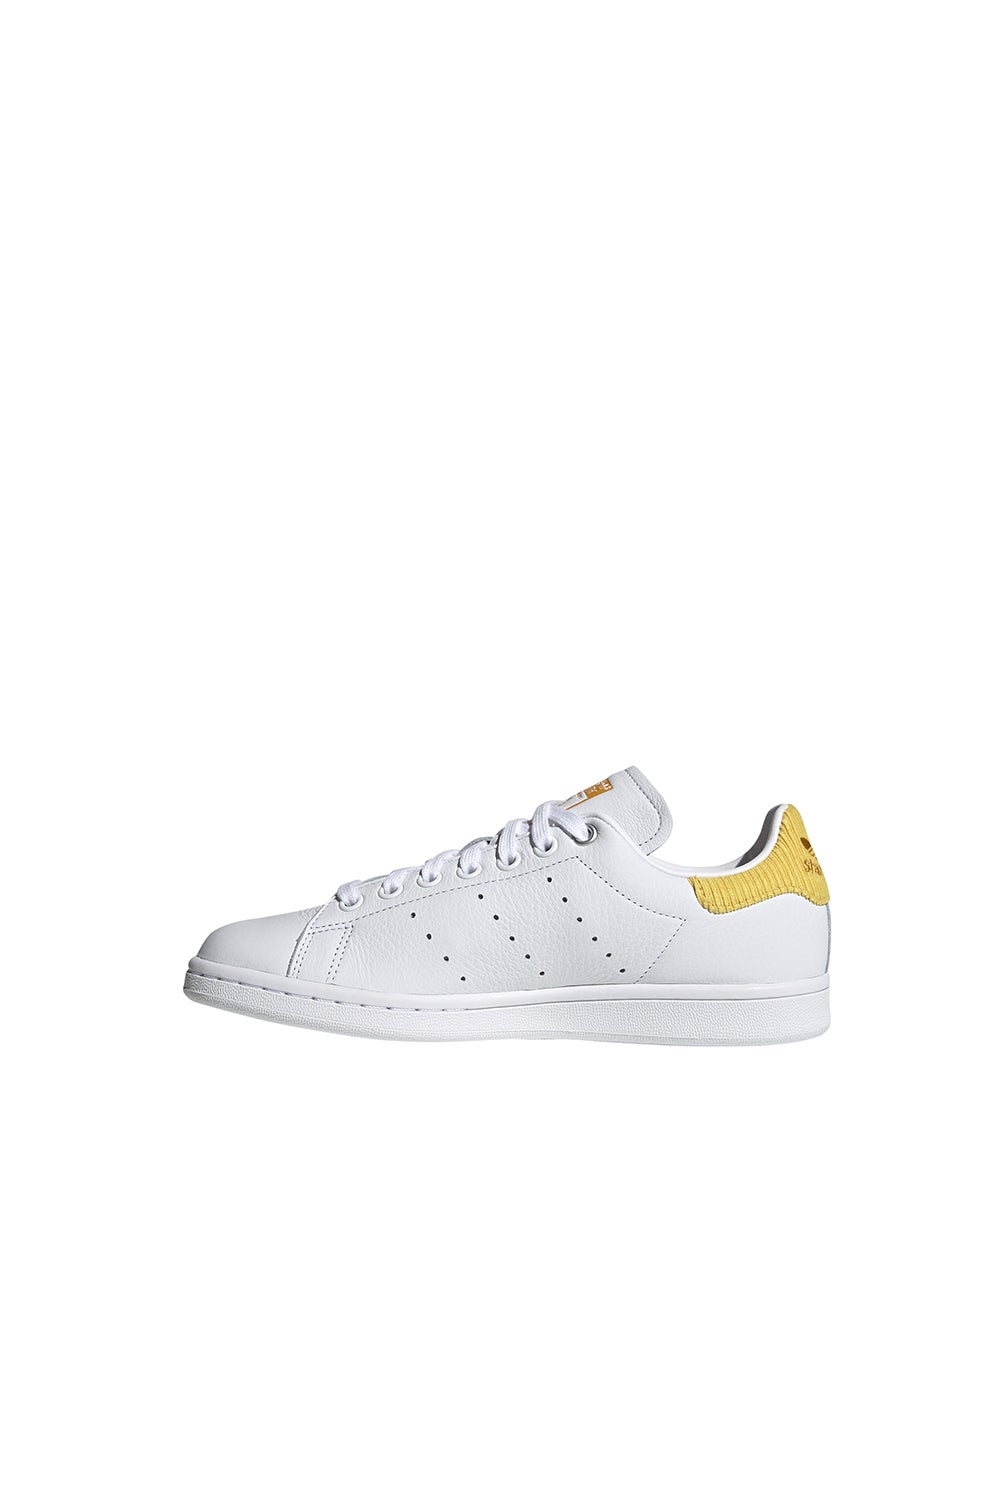 adidas Stan Smith Corn Yellow